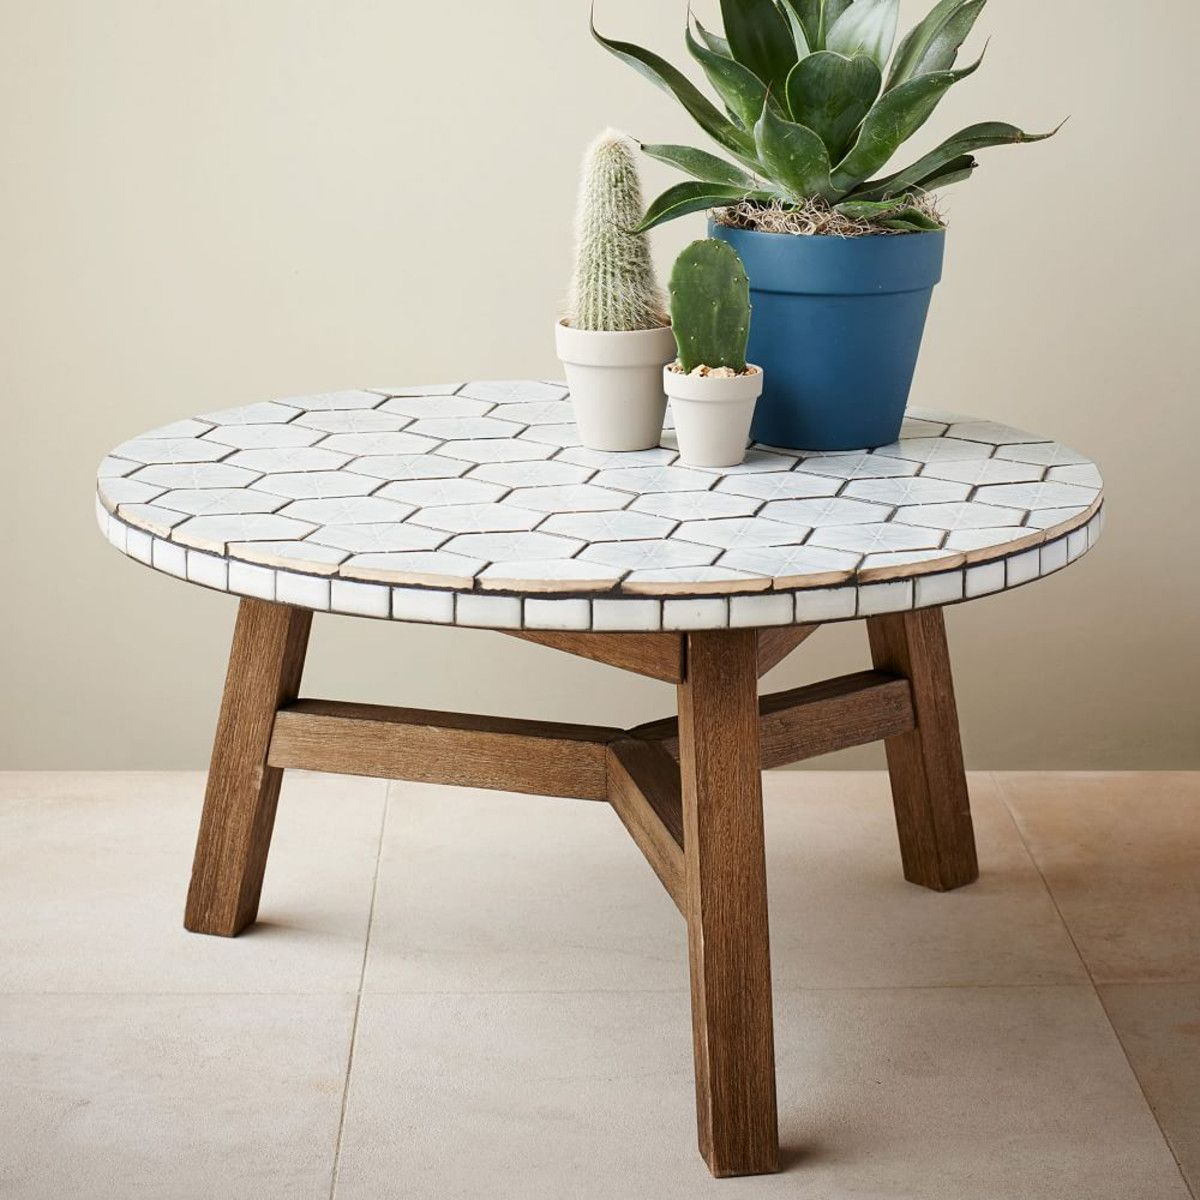 mosaic tiled coffee table - spider web | project bishop rd